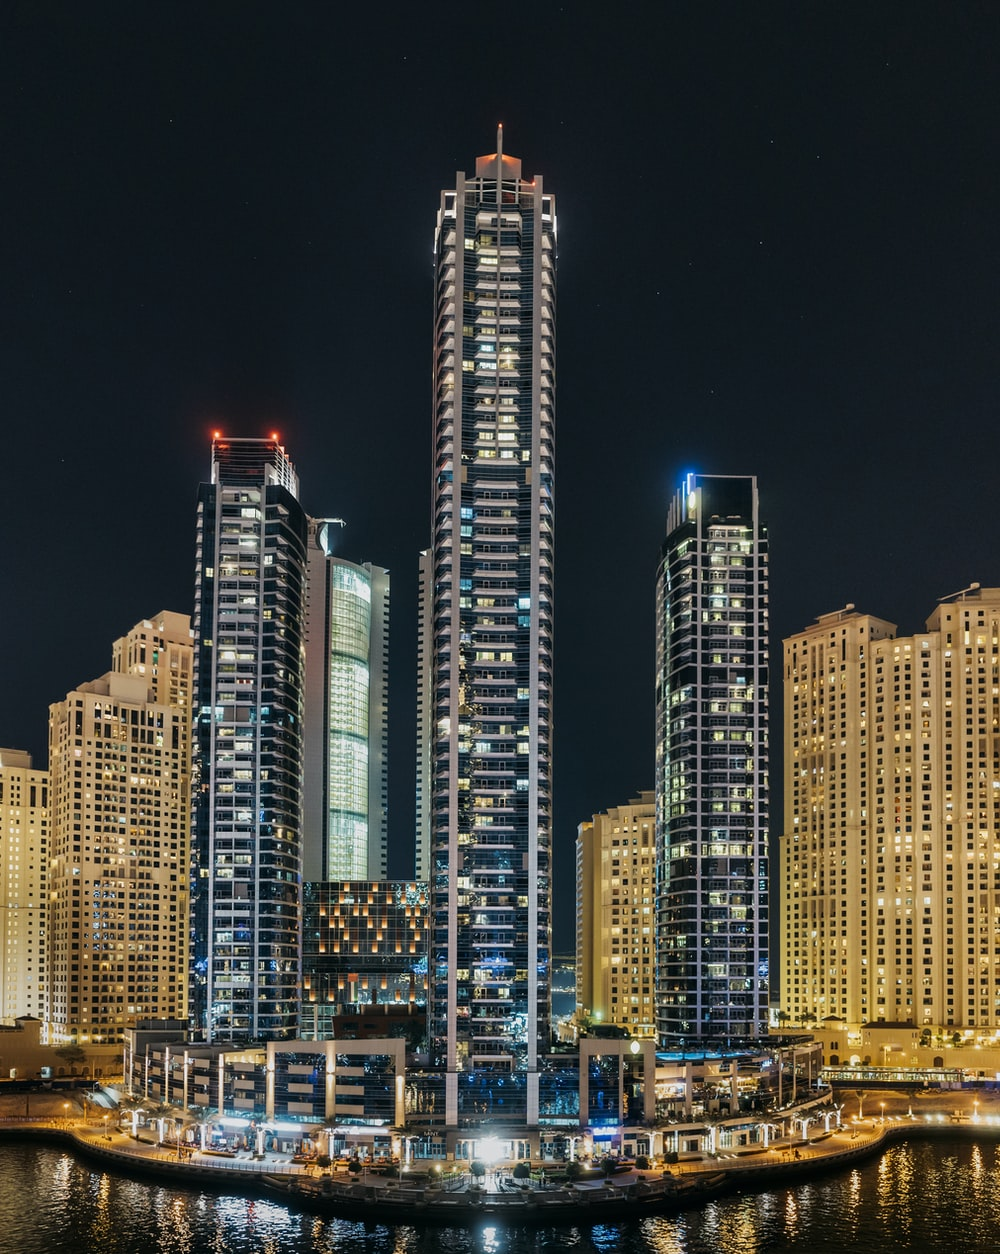 three lighted high-rise buildings near body of water